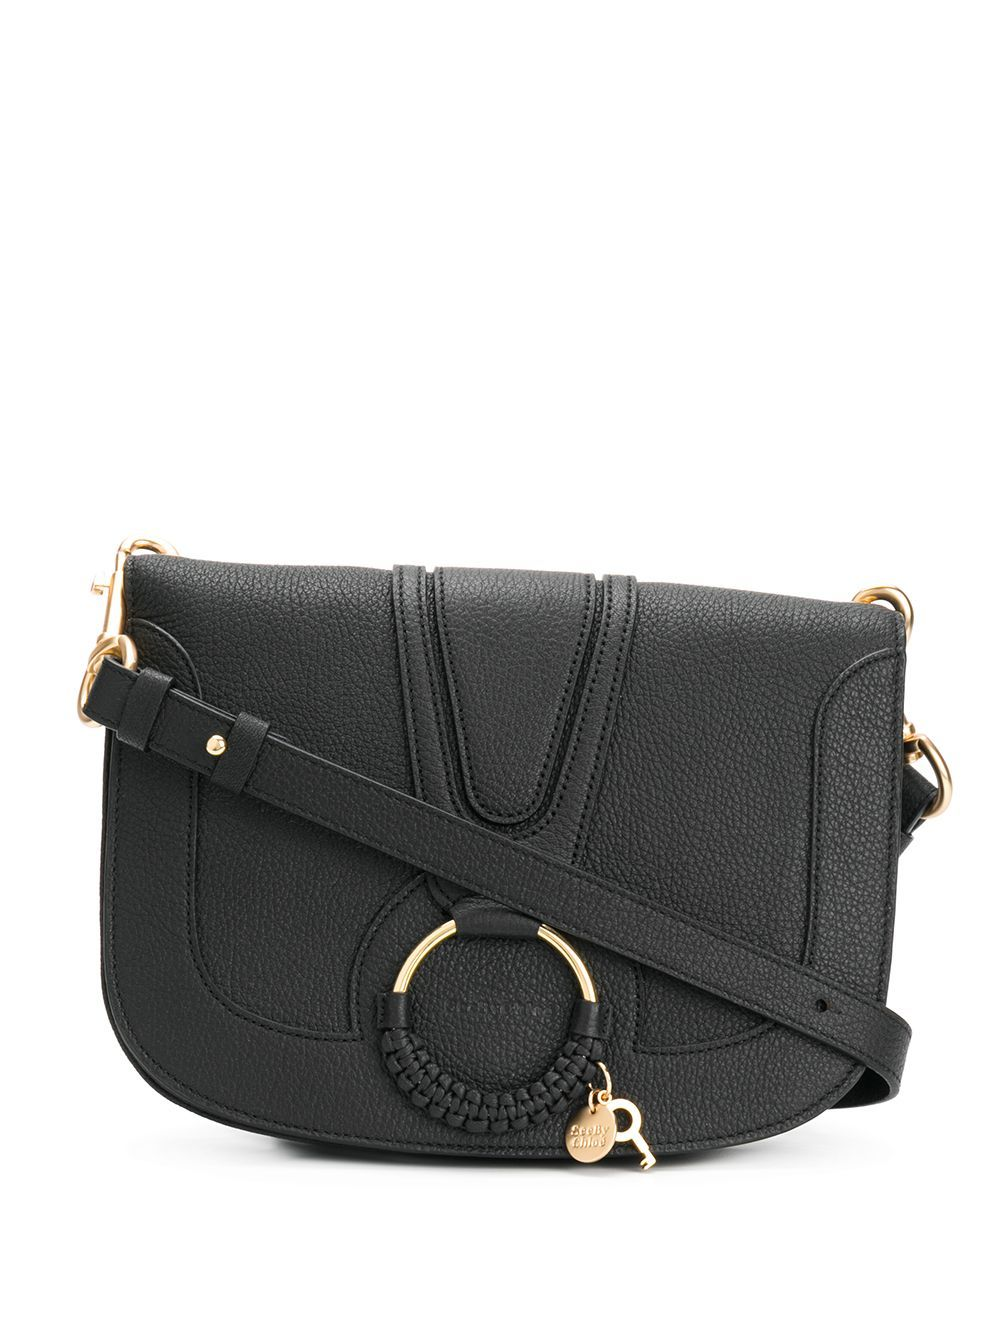 See By Chloé SEE BY CHLO WOMEN'S CHS17SS897305001 BLACK LEATHER SHOULDER BAG